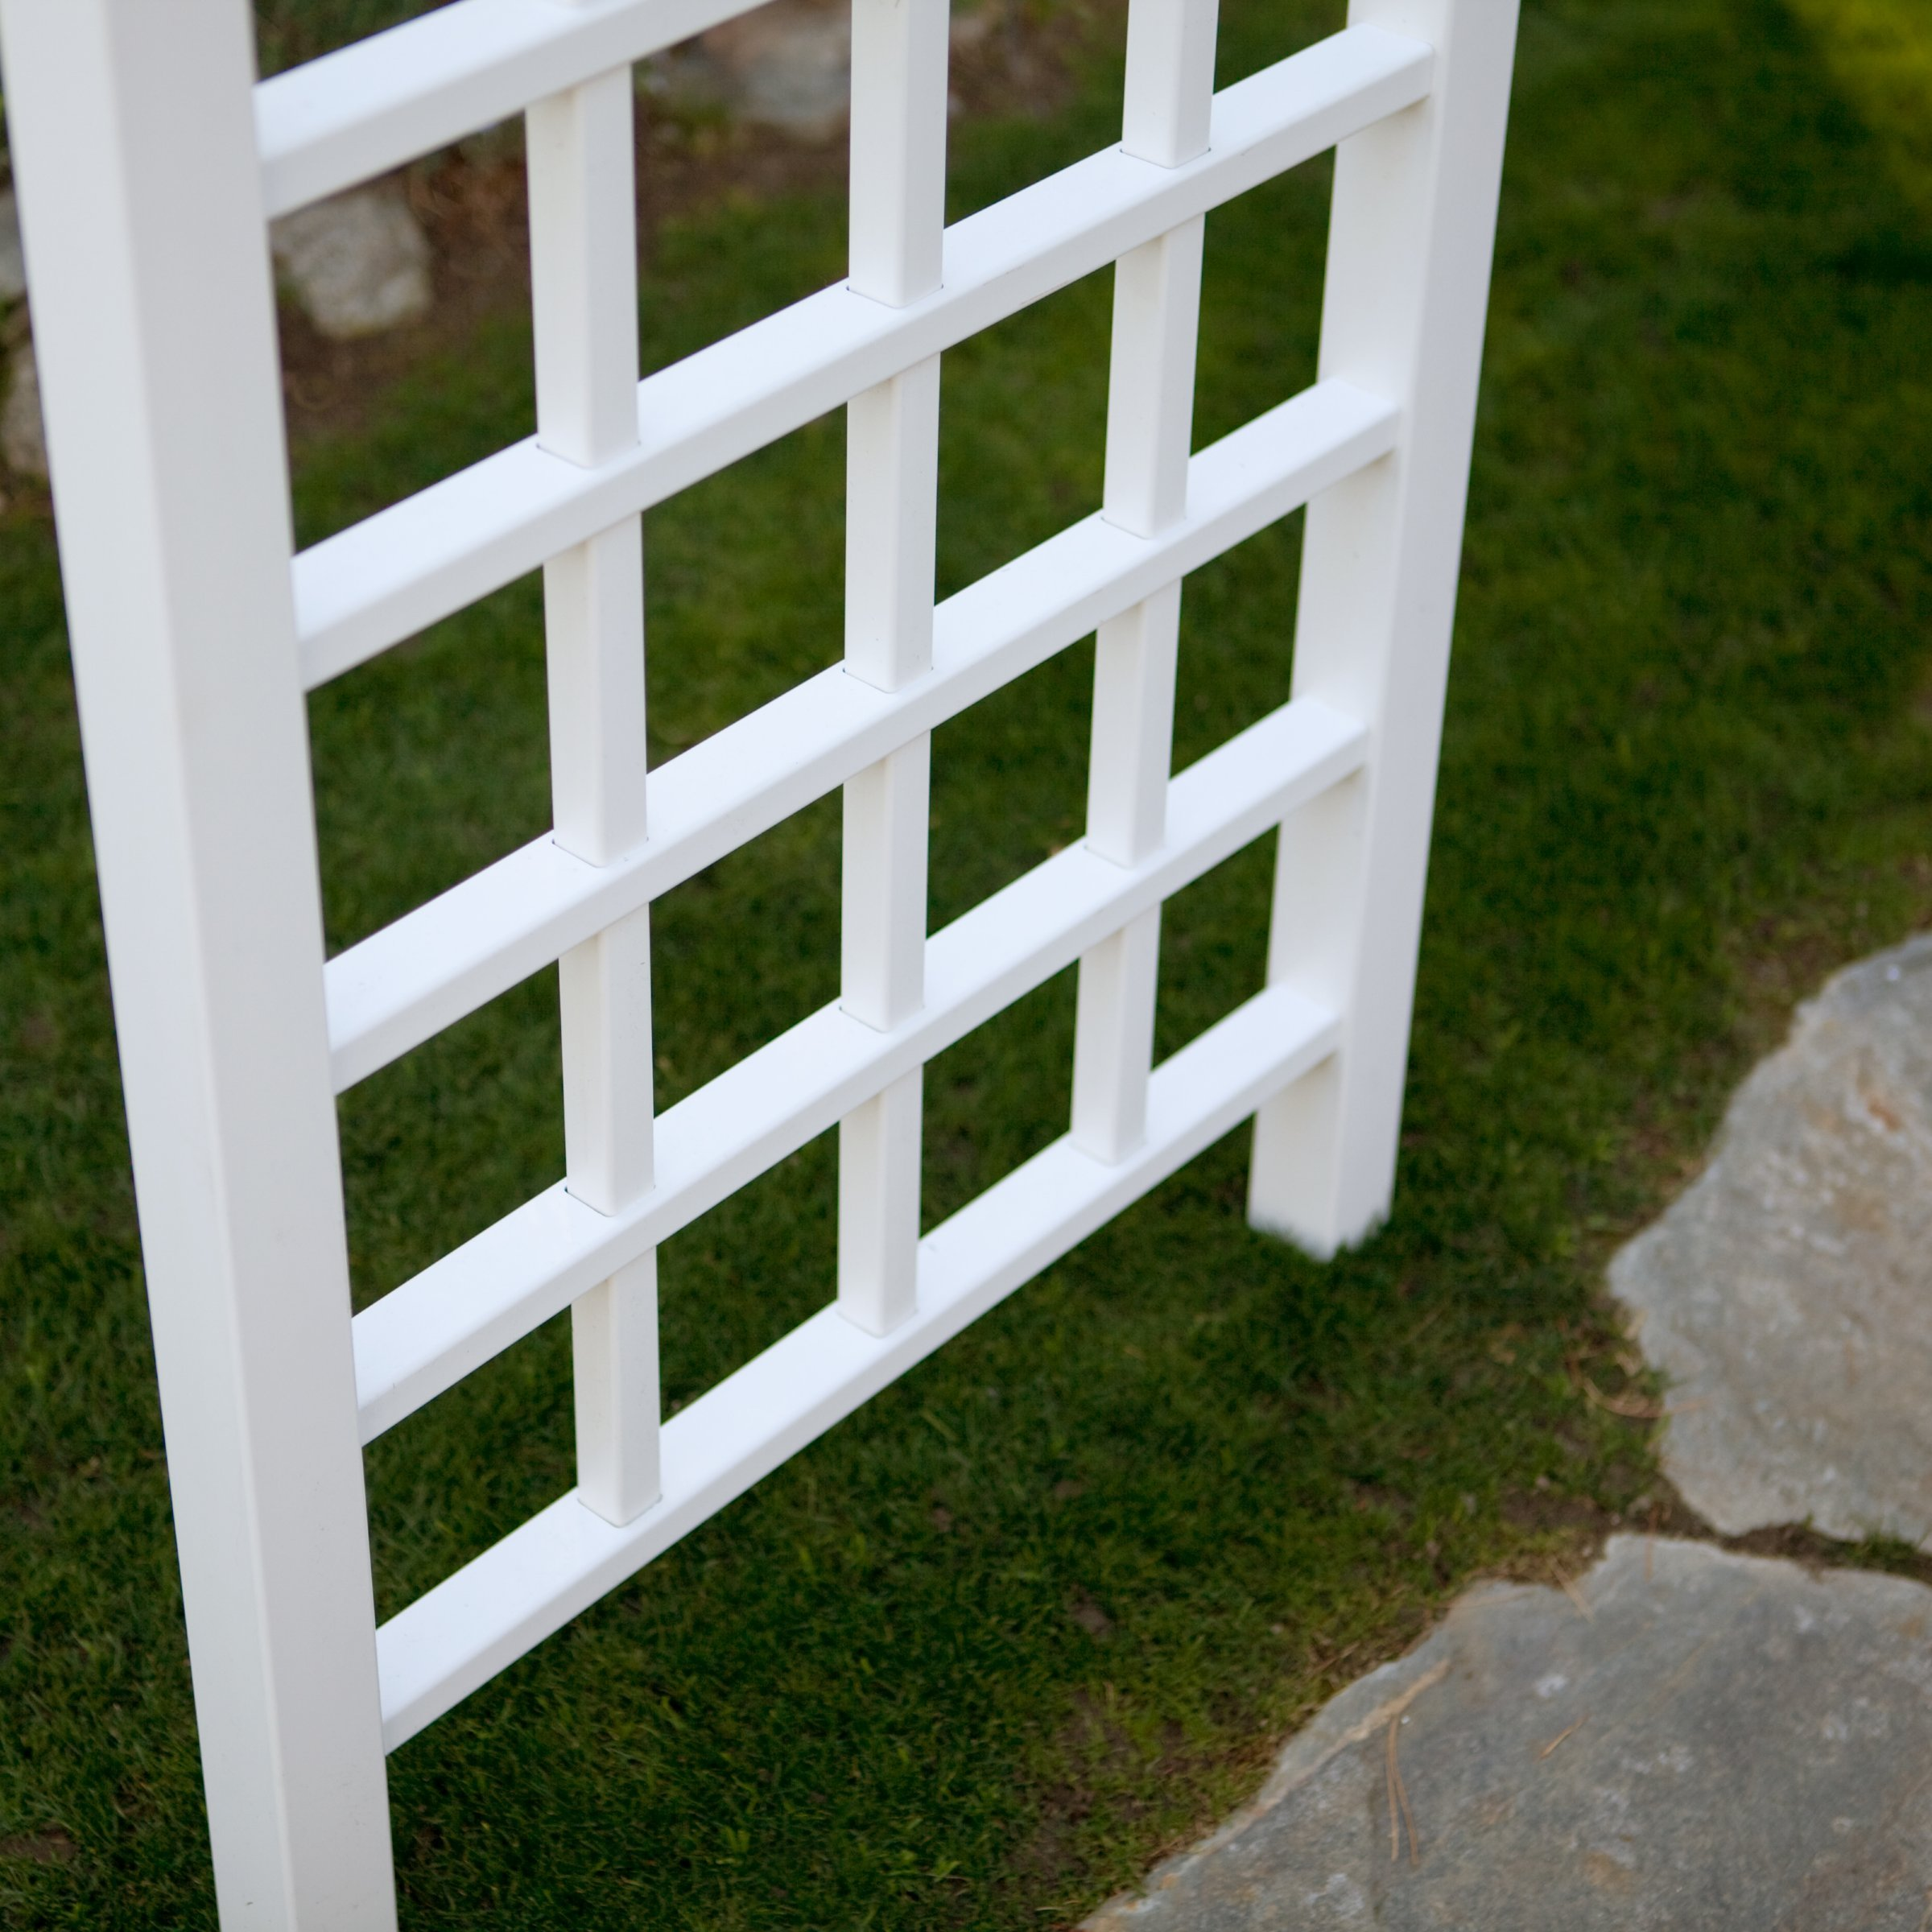 Pergola Arbors Ideal for Garden a Wedding Entry-way or Indoor Weddings. This Decorative Weather Resistant Pergola Kit Will Enhance Any Garden Setting with the Trellis for Plants and Visual Appeal. The Missing Piece to Create an Enchanting Oasis.